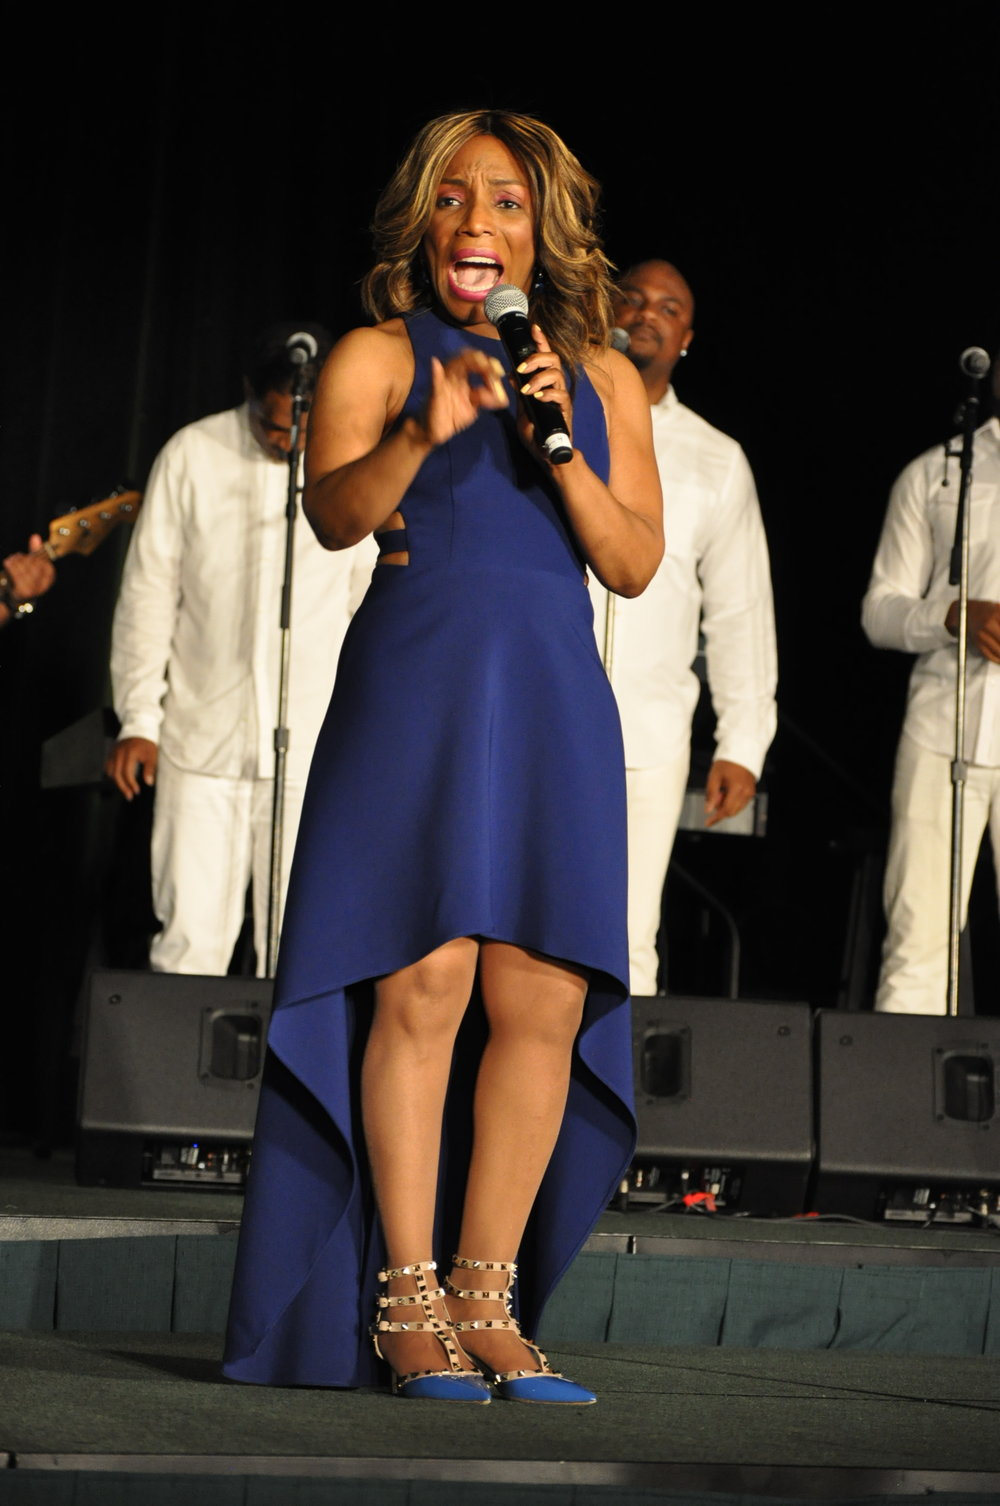 Grammy award wining recordig artist and actress Stephanie Mills performed at the gala.